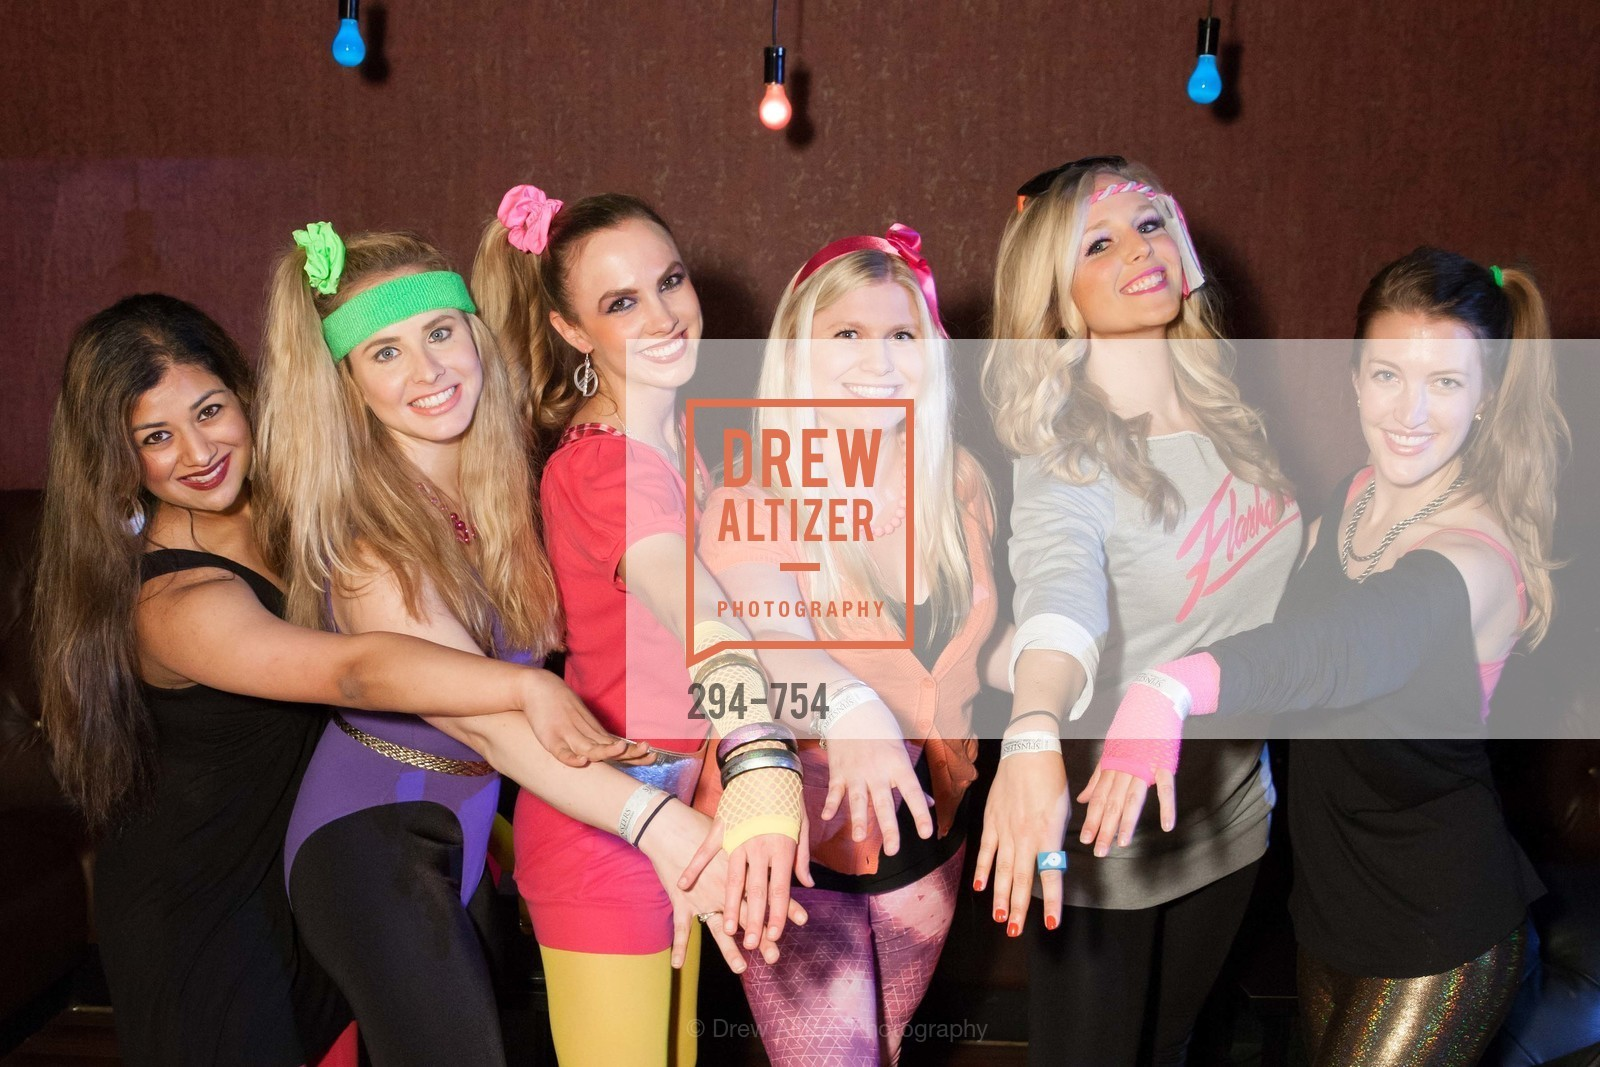 Priya Saiprasad, Elizabeth Sgarrella, Michelle Bertino, Summer McCormick, Cambria Steel, Julia Allyn, SPINSTERS OF SAN FRANCISCO Party Like It's 1985 Charity Party, US, May 29th, 2015,Drew Altizer, Drew Altizer Photography, full-service agency, private events, San Francisco photographer, photographer california